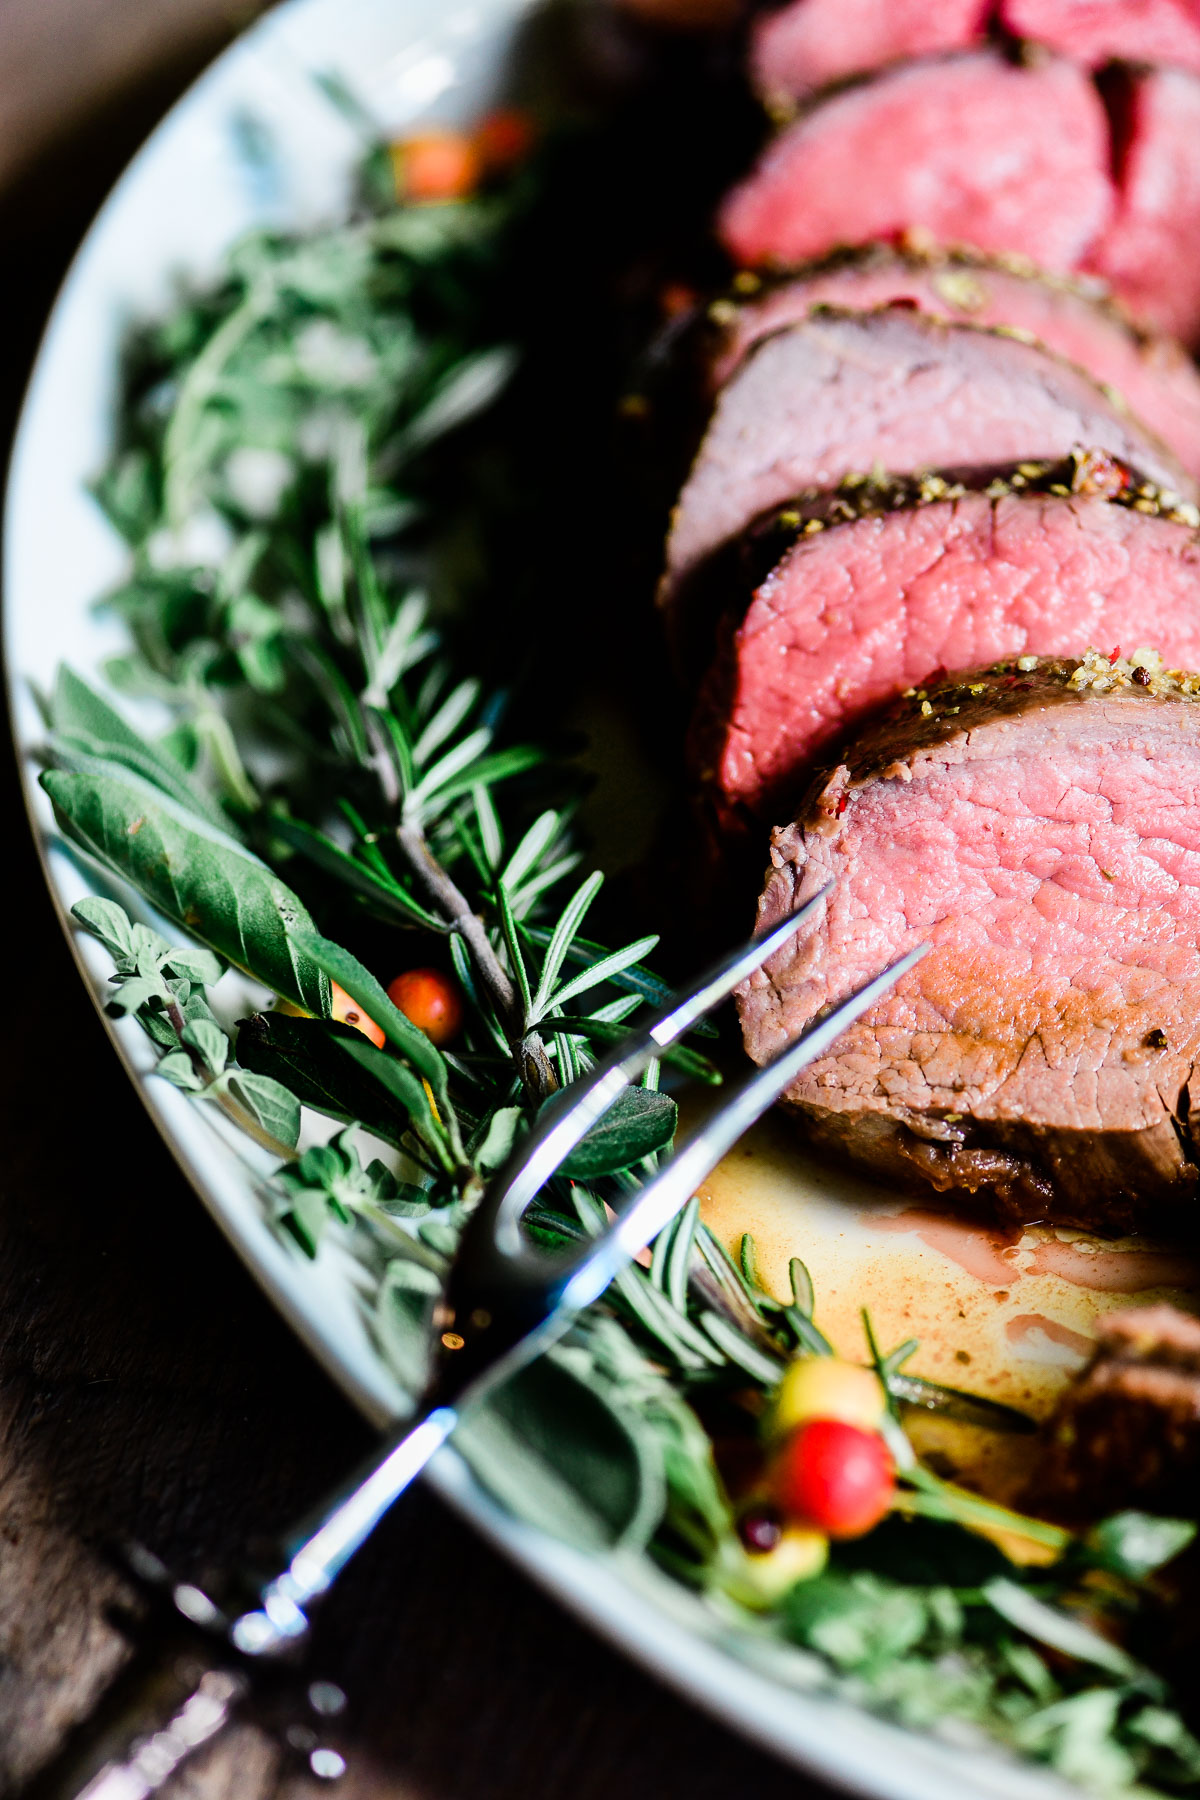 slices of beef tenderloin on a platter with fresh herbs